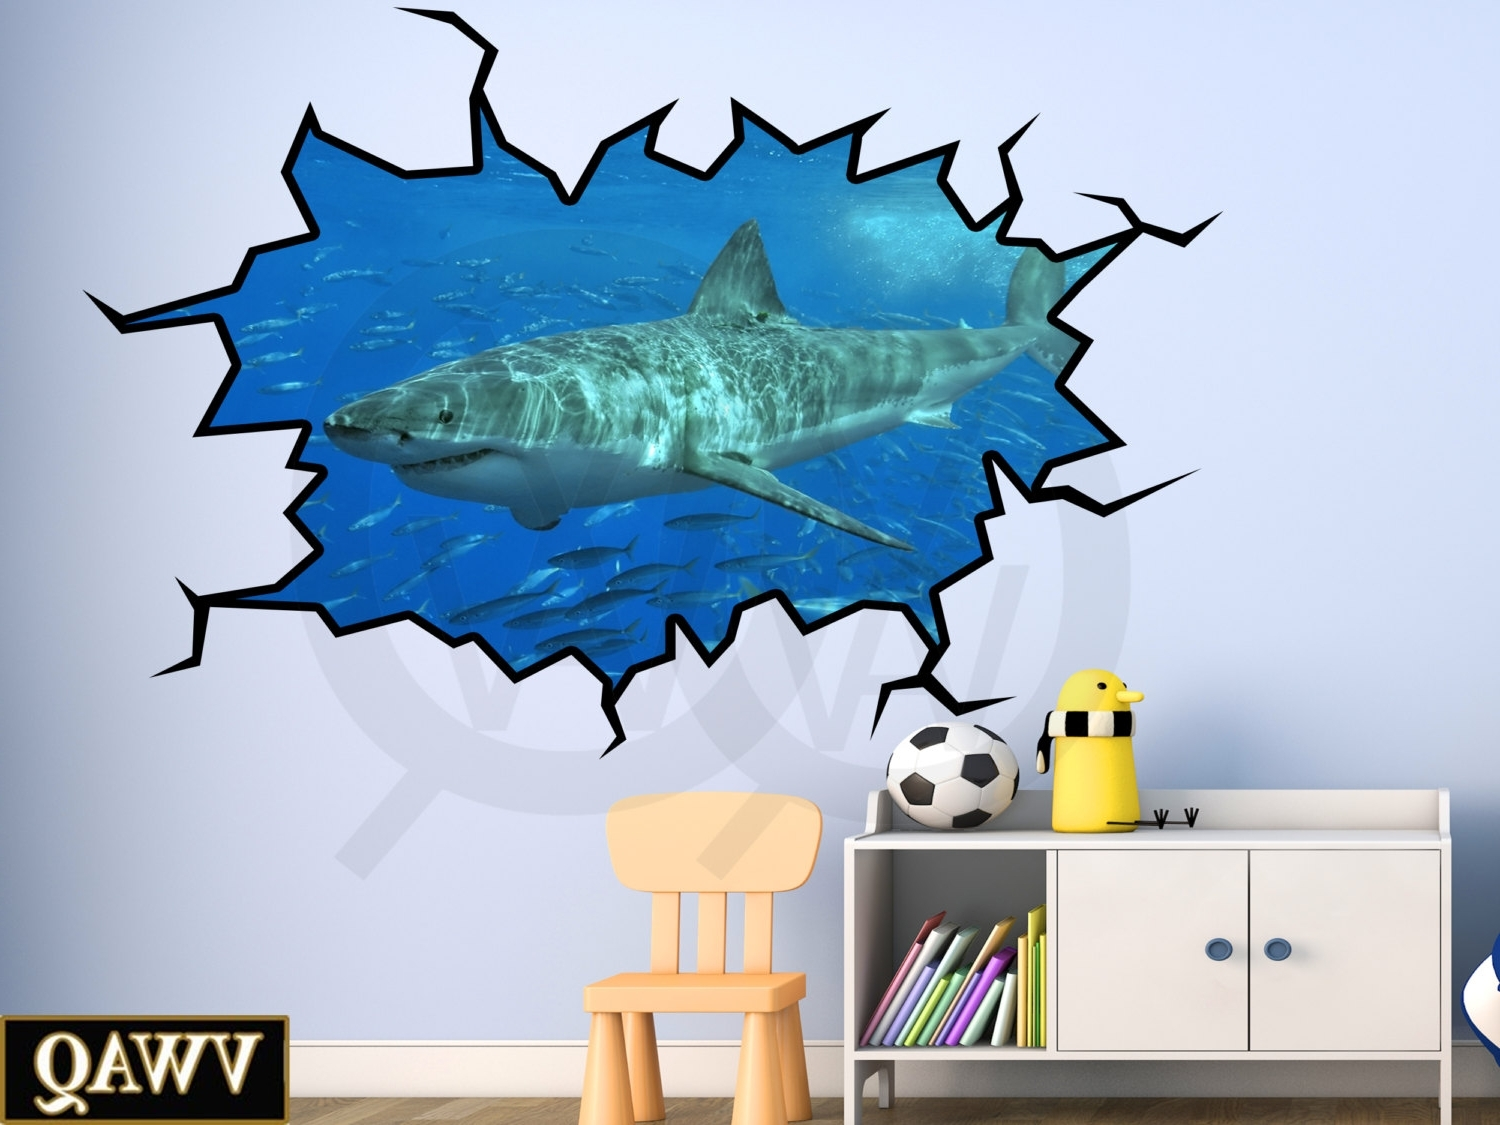 Fashionable Stickers : 3D Wall Art Stickers South Africa In Conjunction With Throughout South Africa Wall Art 3D (View 5 of 15)